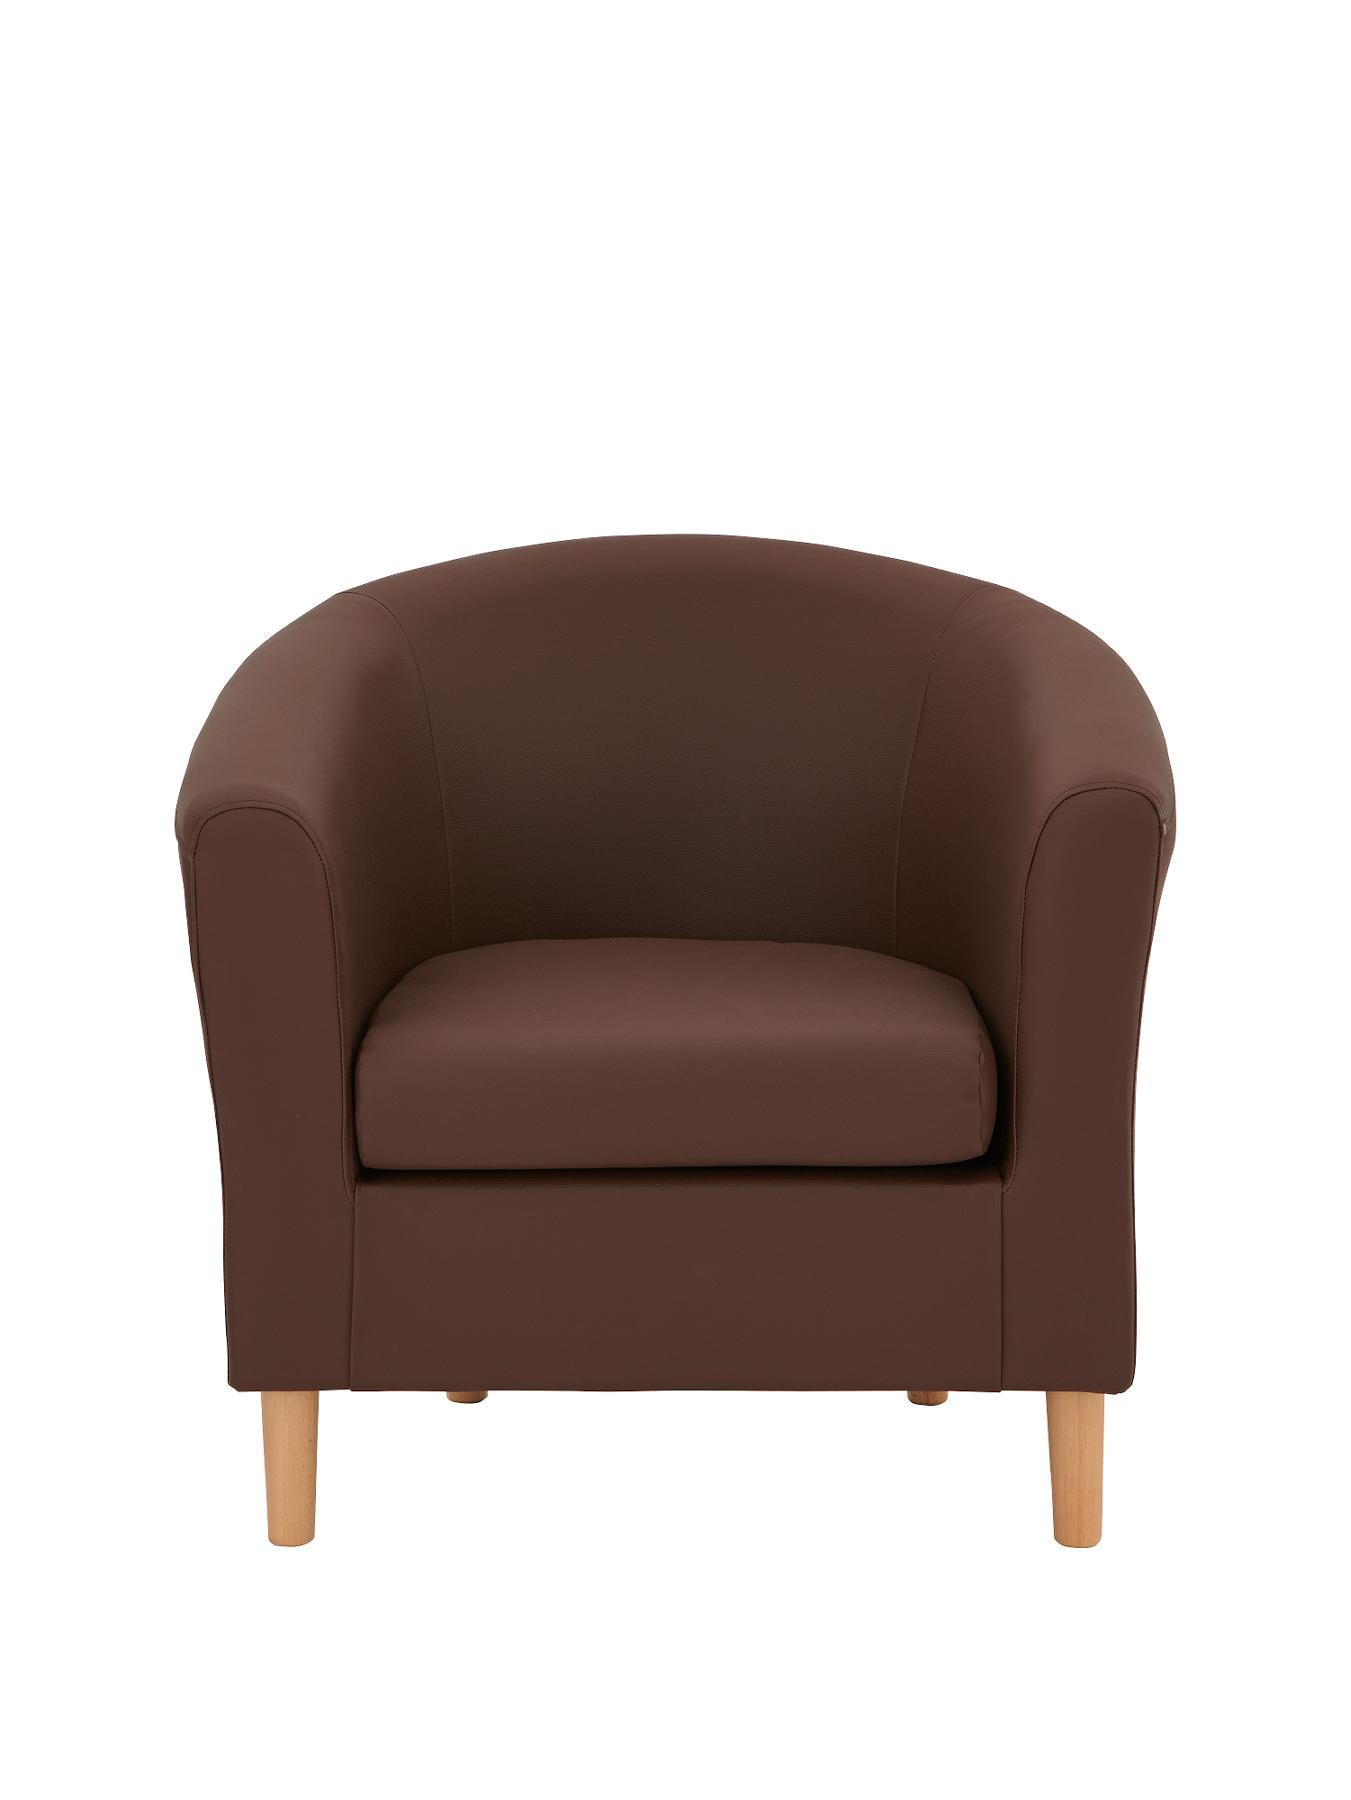 Josie Faux Leather Tub Chair - Chocolate, Black,Chocolate